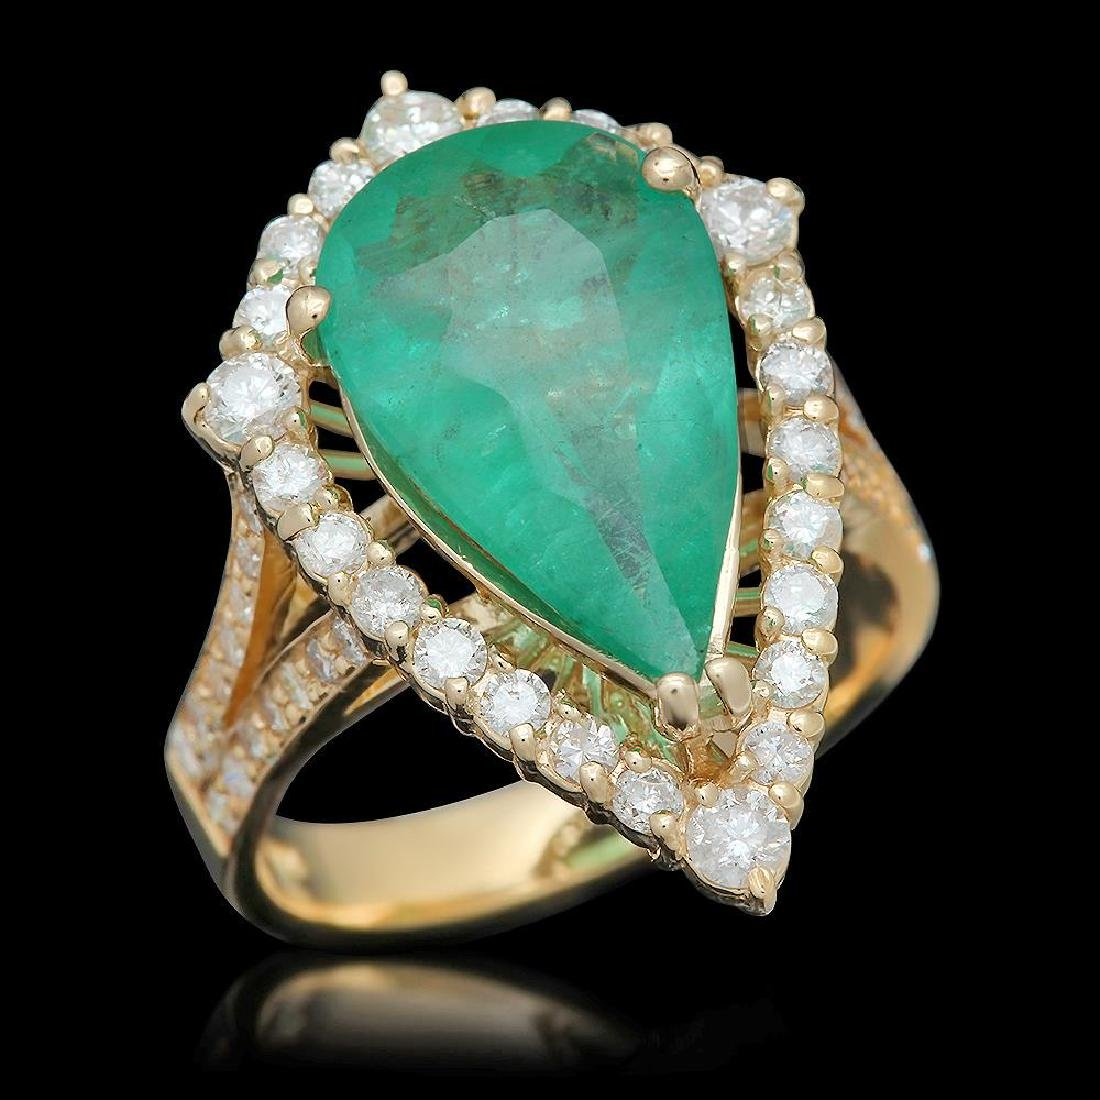 14K Gold 3.82 Emerald 1.05 Diamond Ring